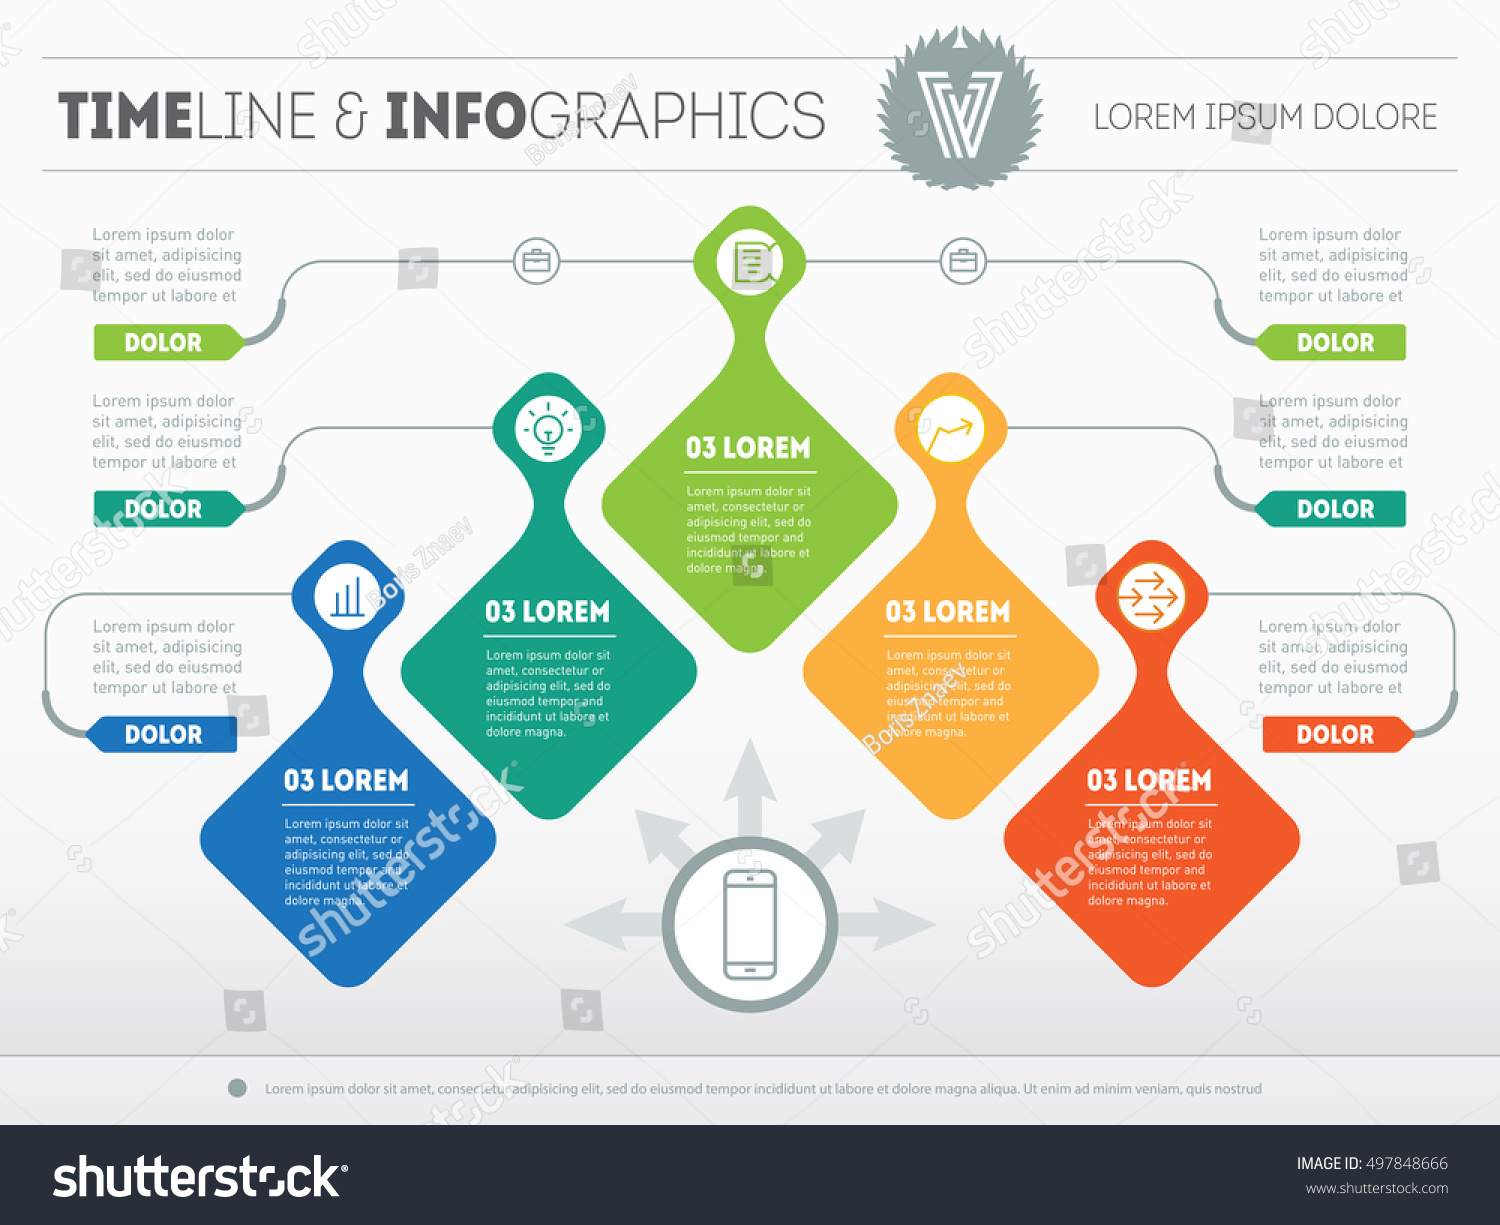 Category: Abstract PPT Templates